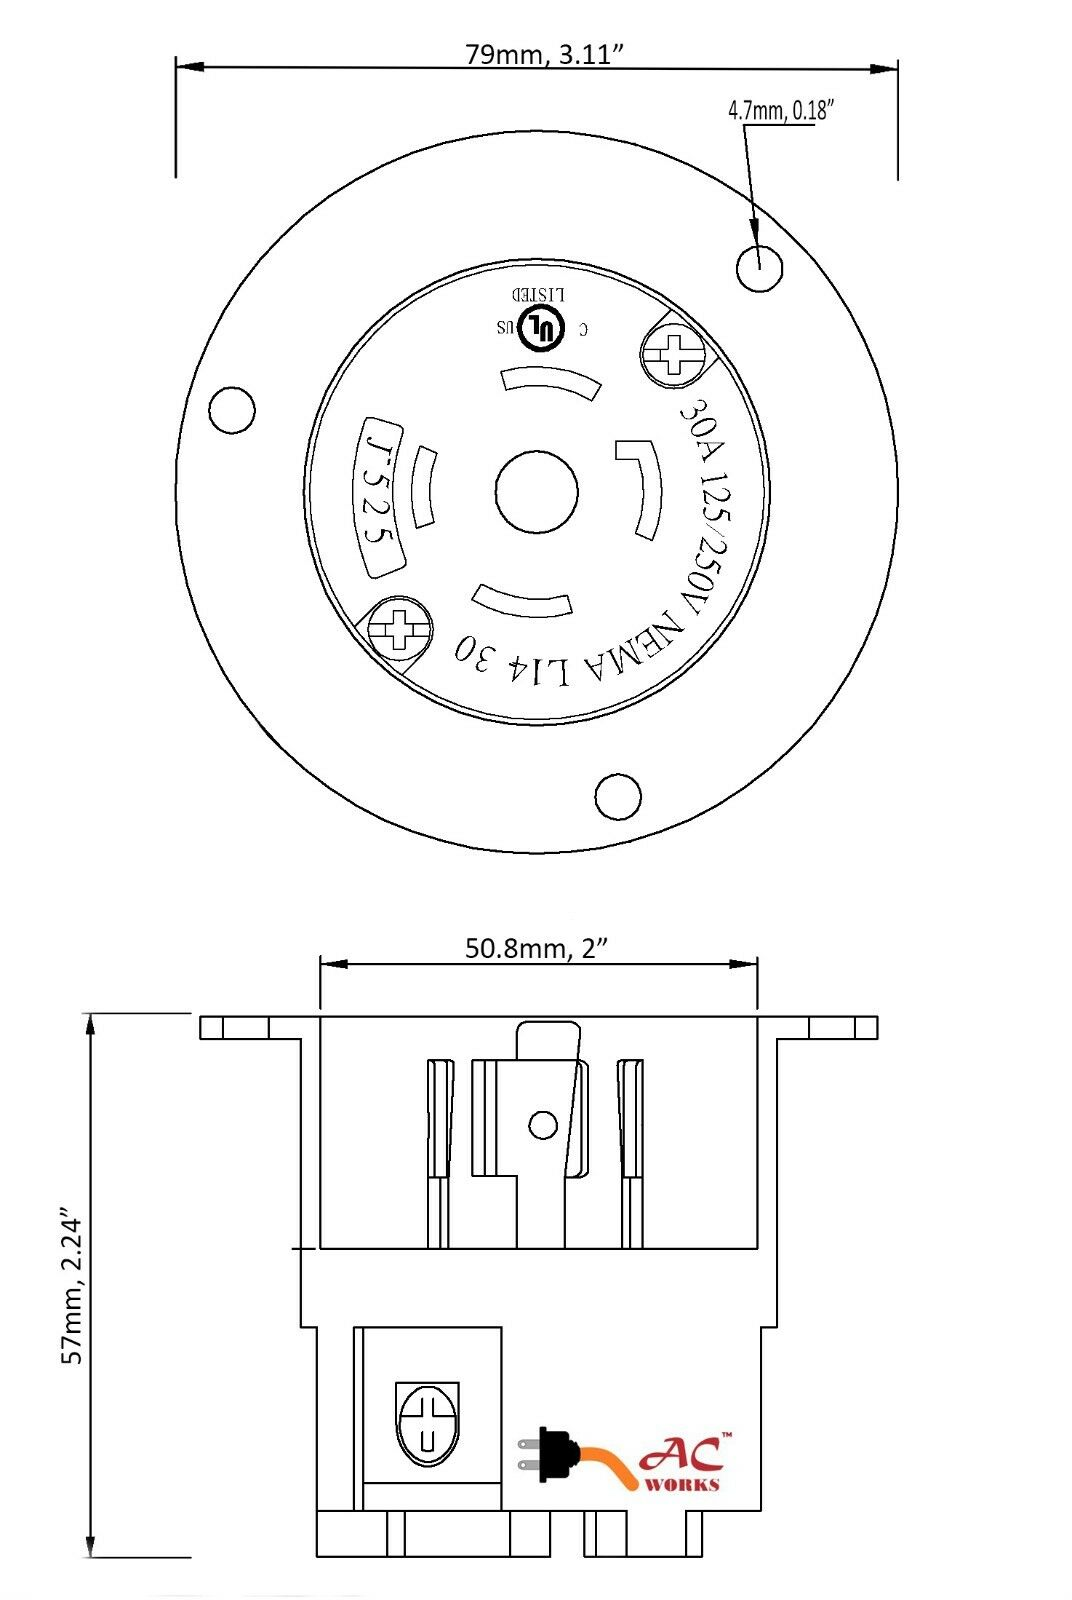 diagram wiring l14 30 30a 6 spikeballclubkoeln de Motor Wiring Diagram l14 30r wiring diagram database rh 9 itsforthebaby l14 30p wiring diagram l14